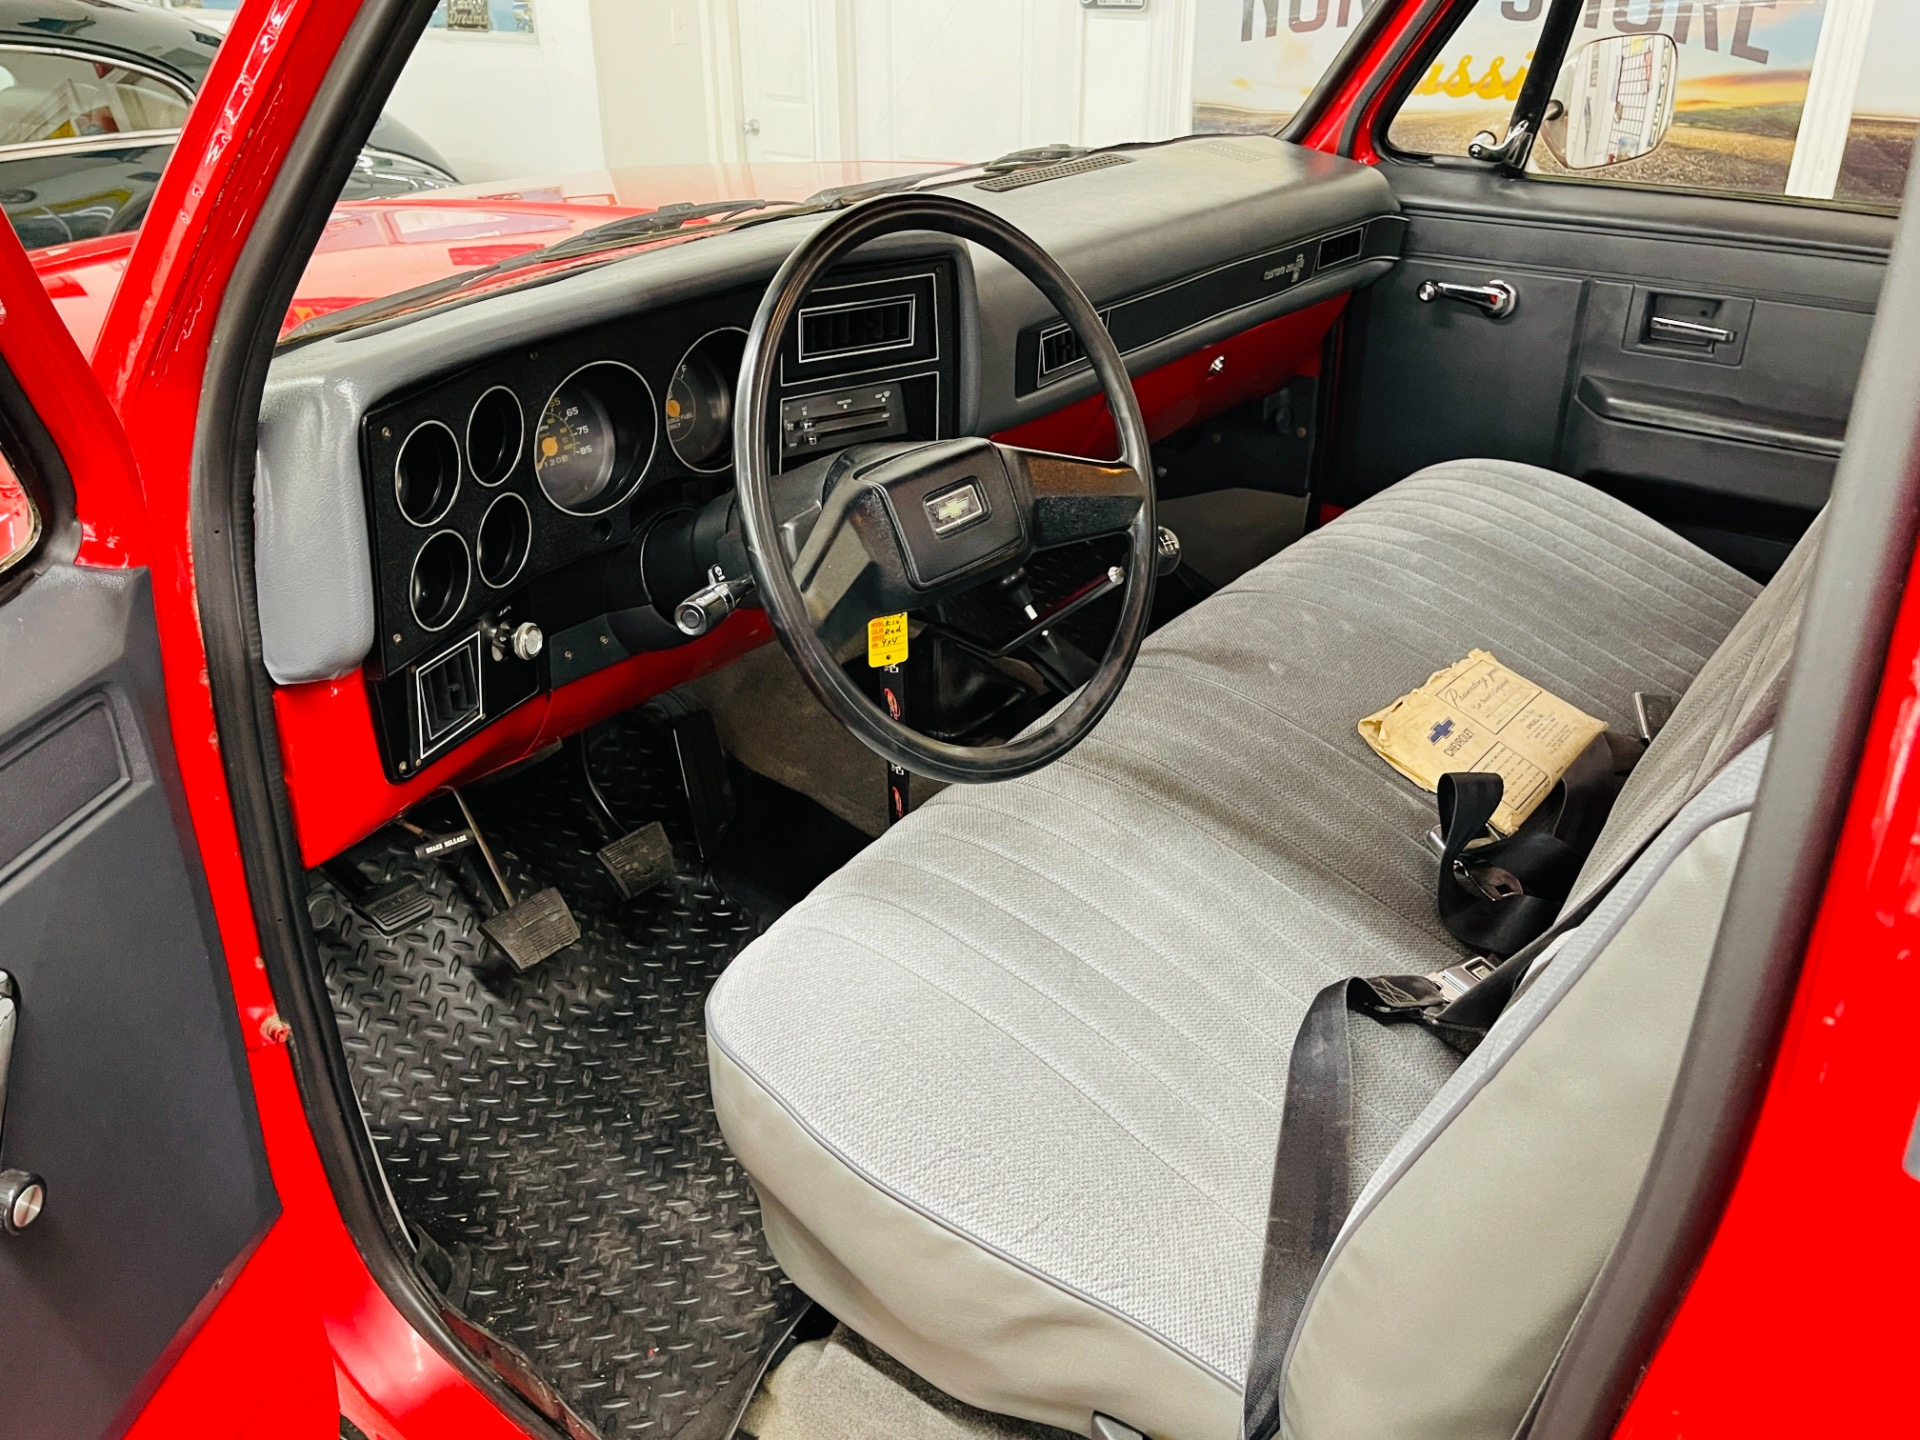 Used 1986 Chevrolet C/K 10 Series - 4 SPEED MANUAL - 4X4 - CLEAN SOUTHERN TRUCK - SEE VIDEO - | Mundelein, IL